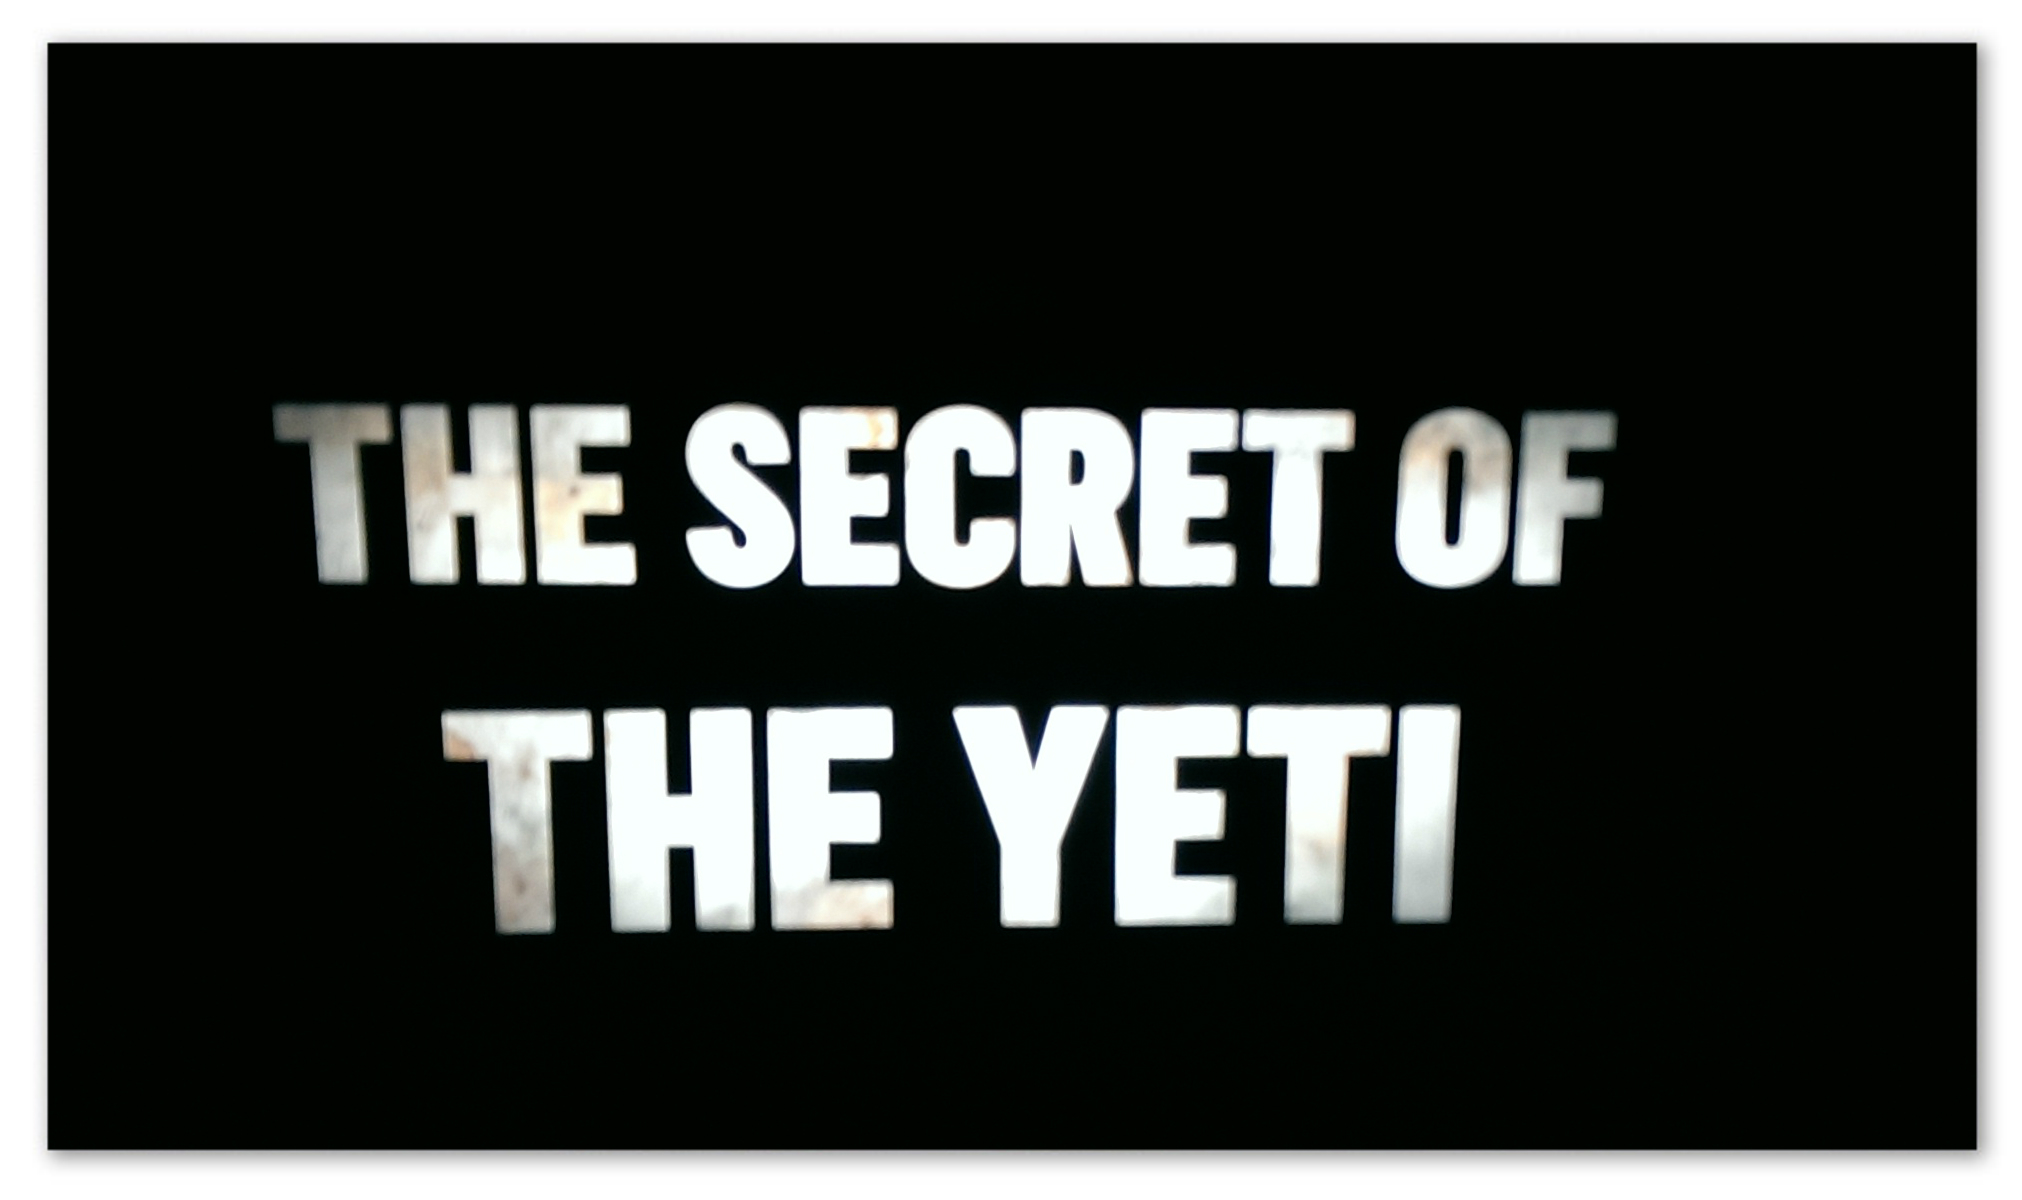 """Image of a black background with white text """"The Secret of the Yeti"""""""